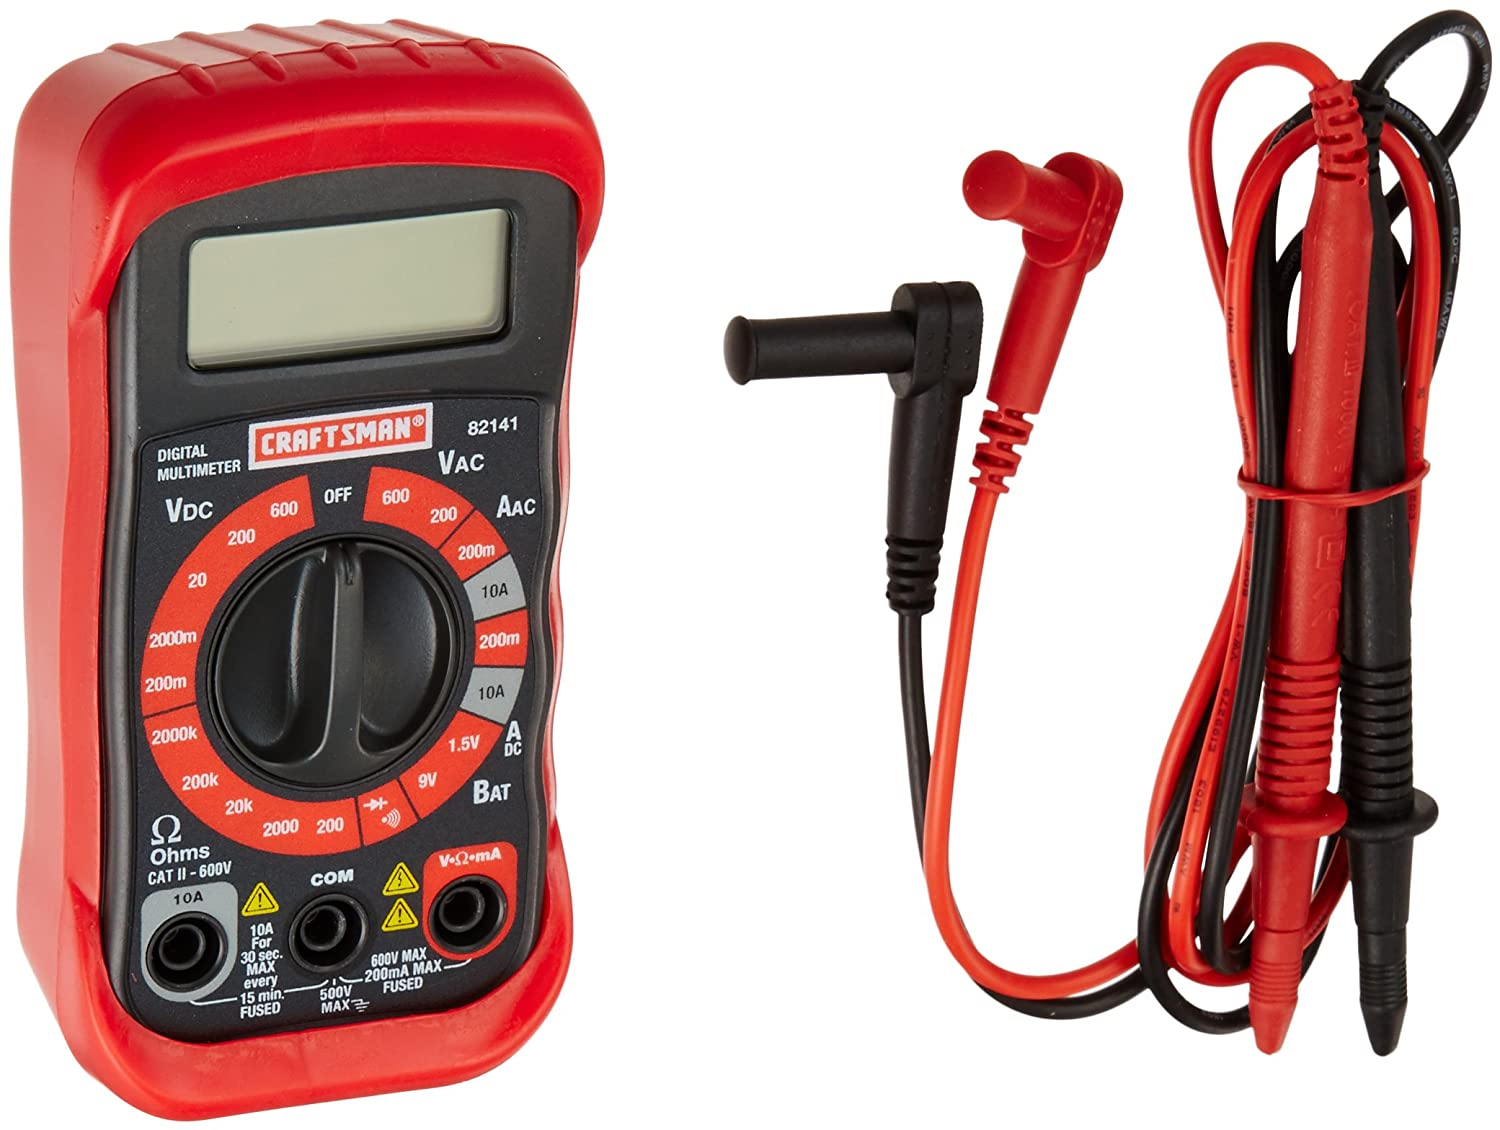 Craftsman 34-82141 Digital Multimeter with 8 Functions and 20 Ranges ...